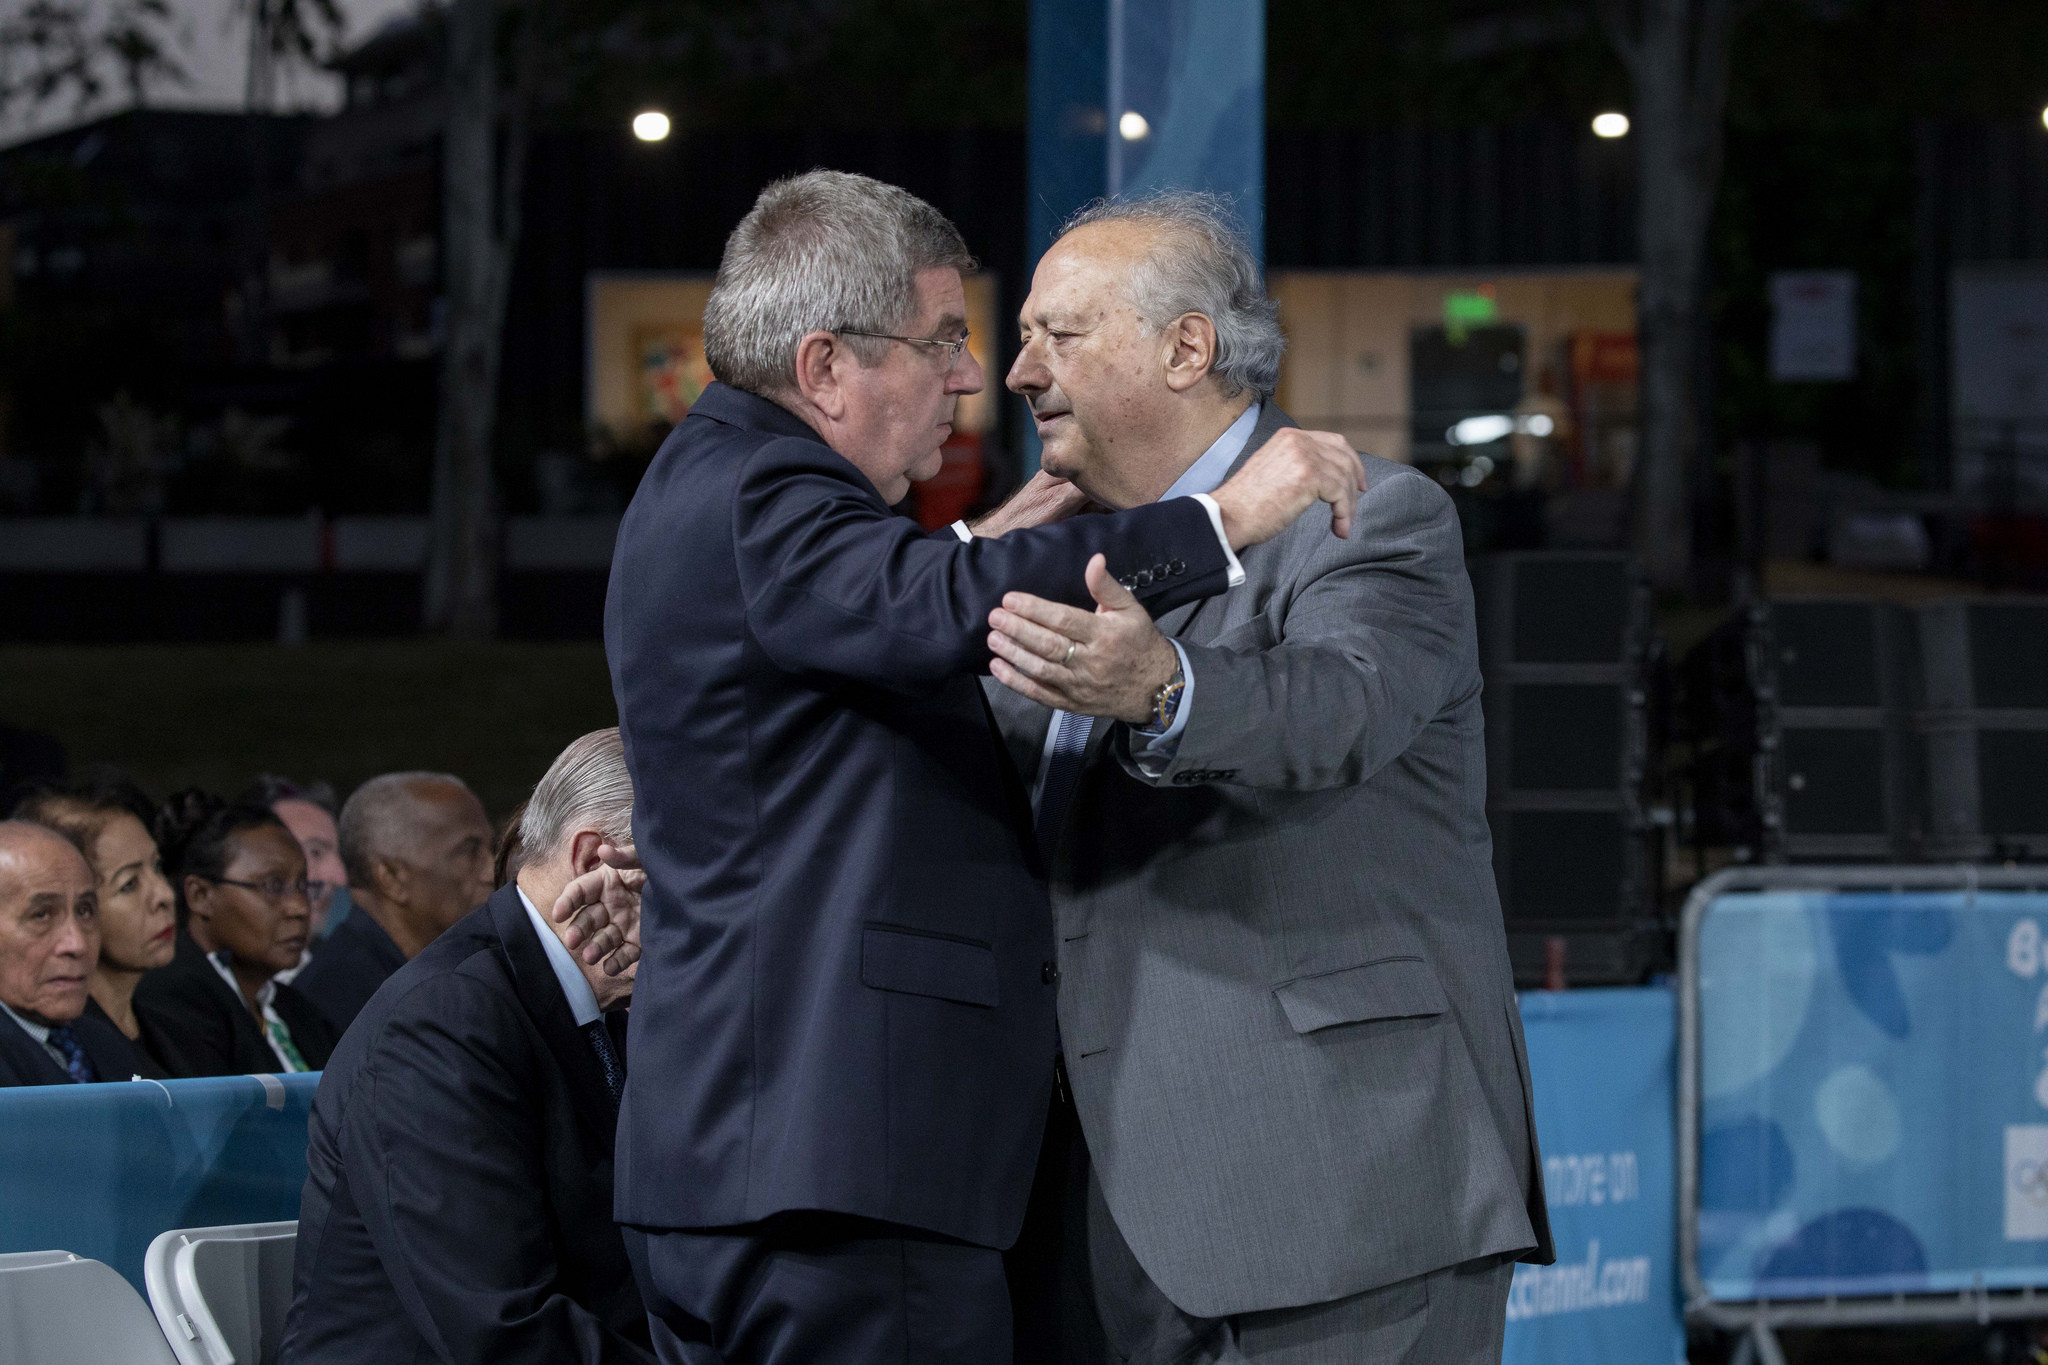 The Presidents of the IOC and FIBA both spoke at a ceremony attended by a host of members and other officials ©IOC